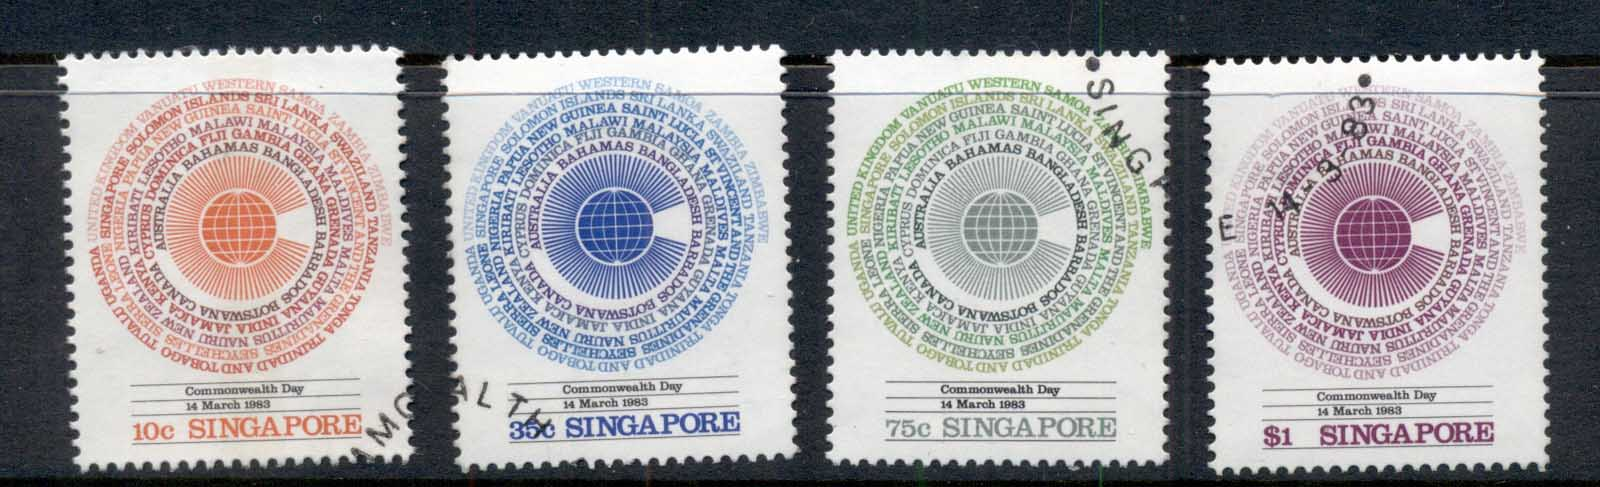 Singapore 1983 Commonwealth Day FU